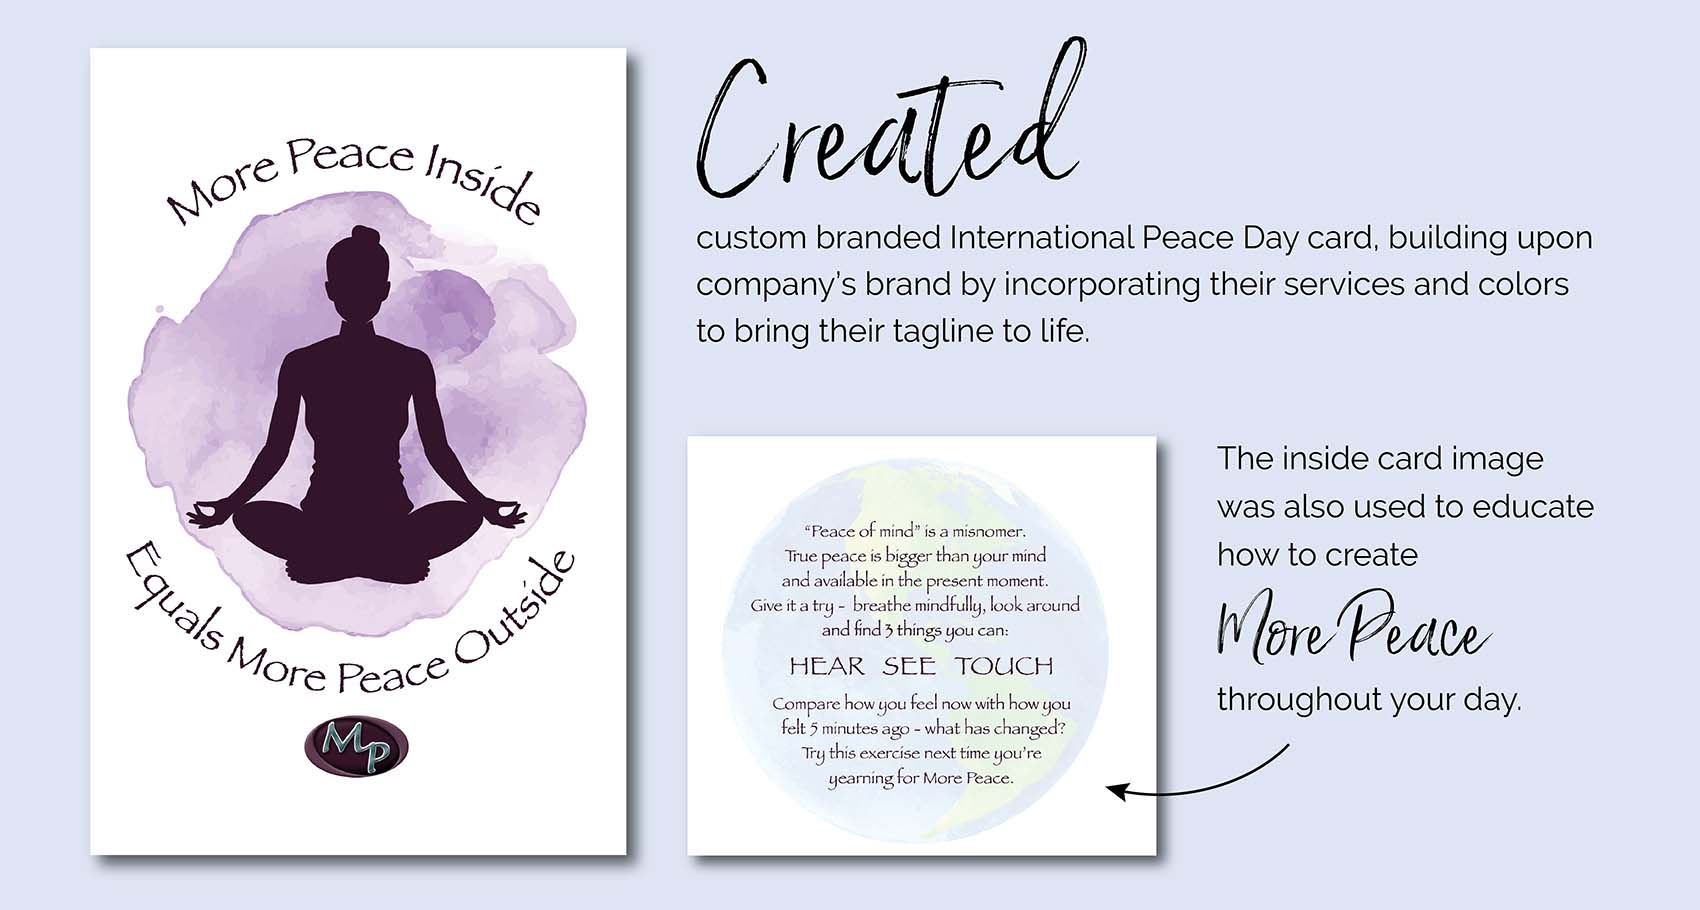 More Peace Inside Holiday Card Design by Eclectik Design